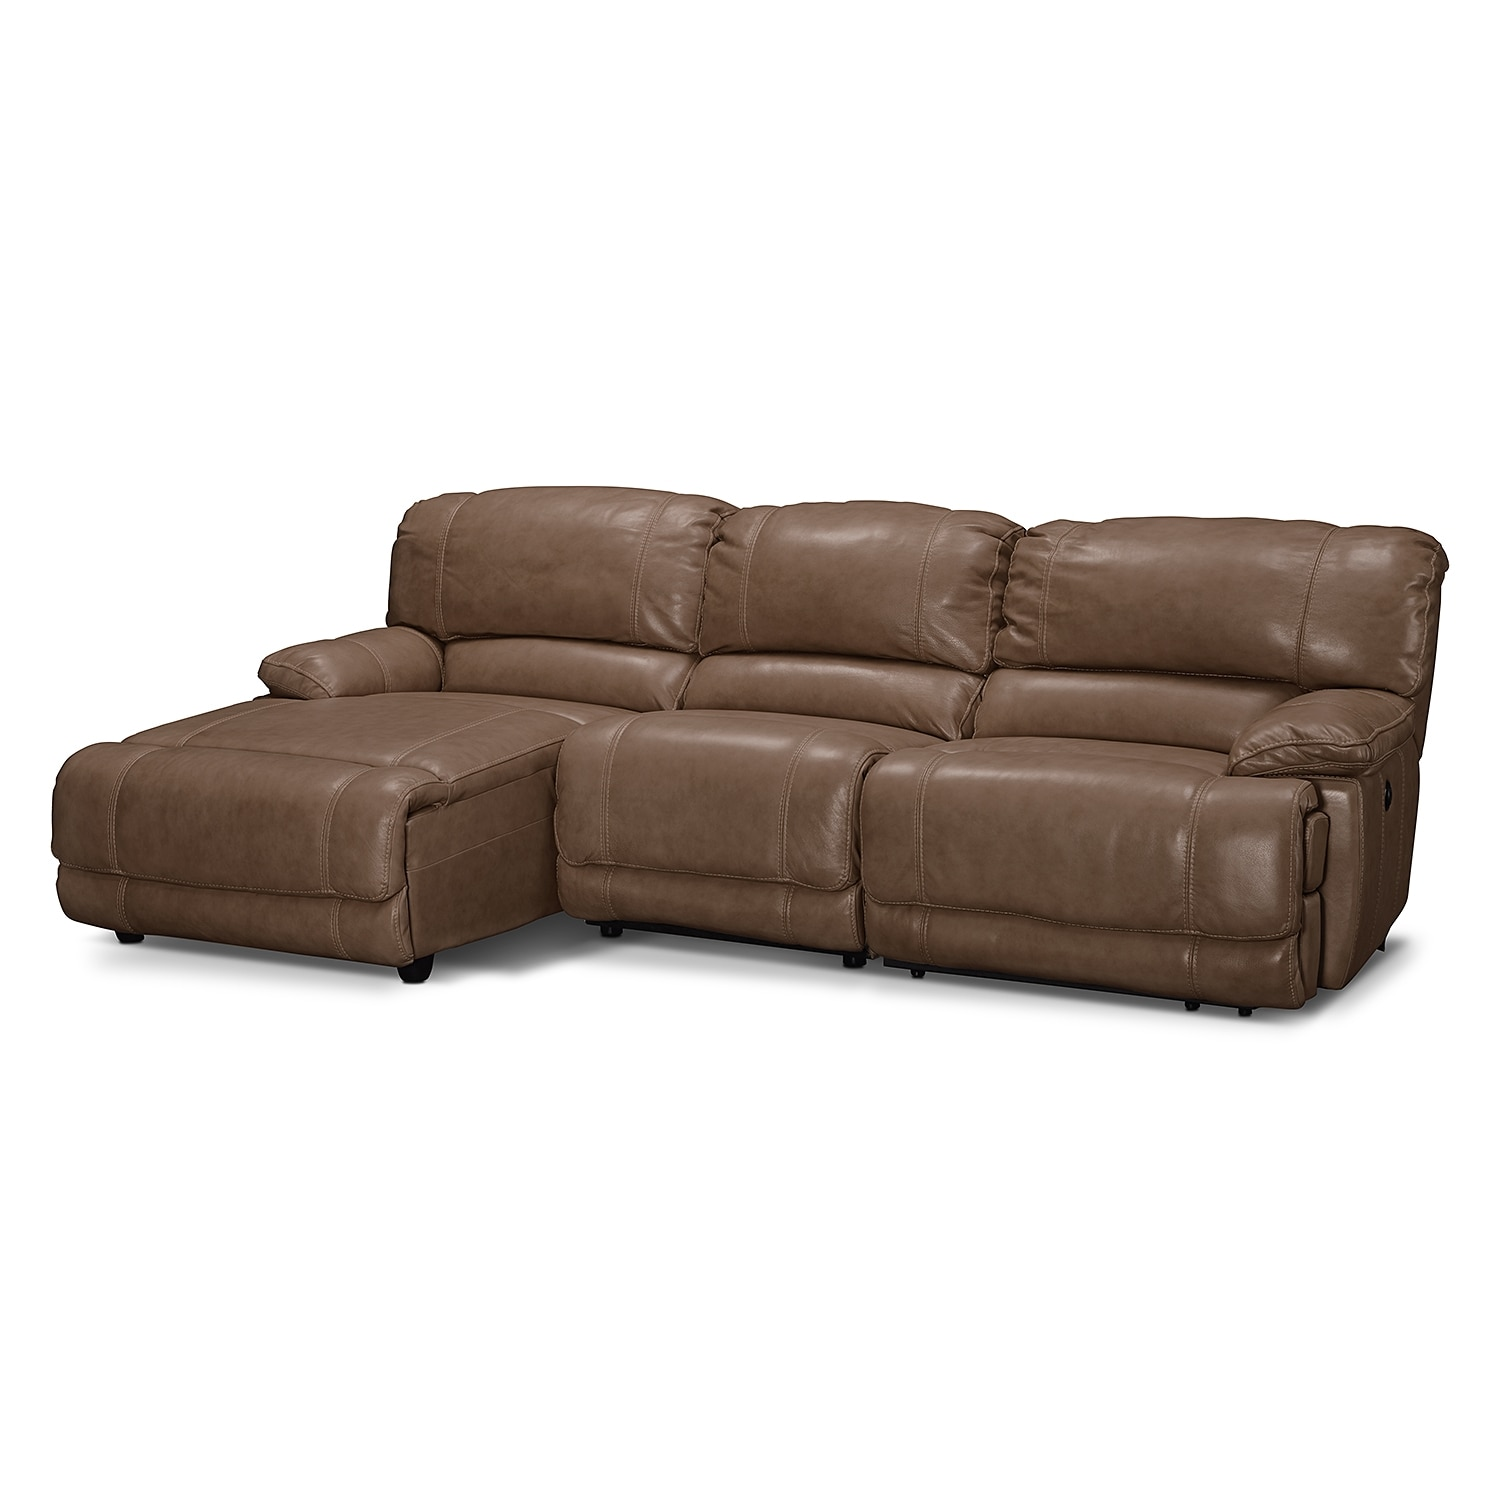 St malo 3 piece power reclining sectional with left for 3 piece sectional sofa with chaise